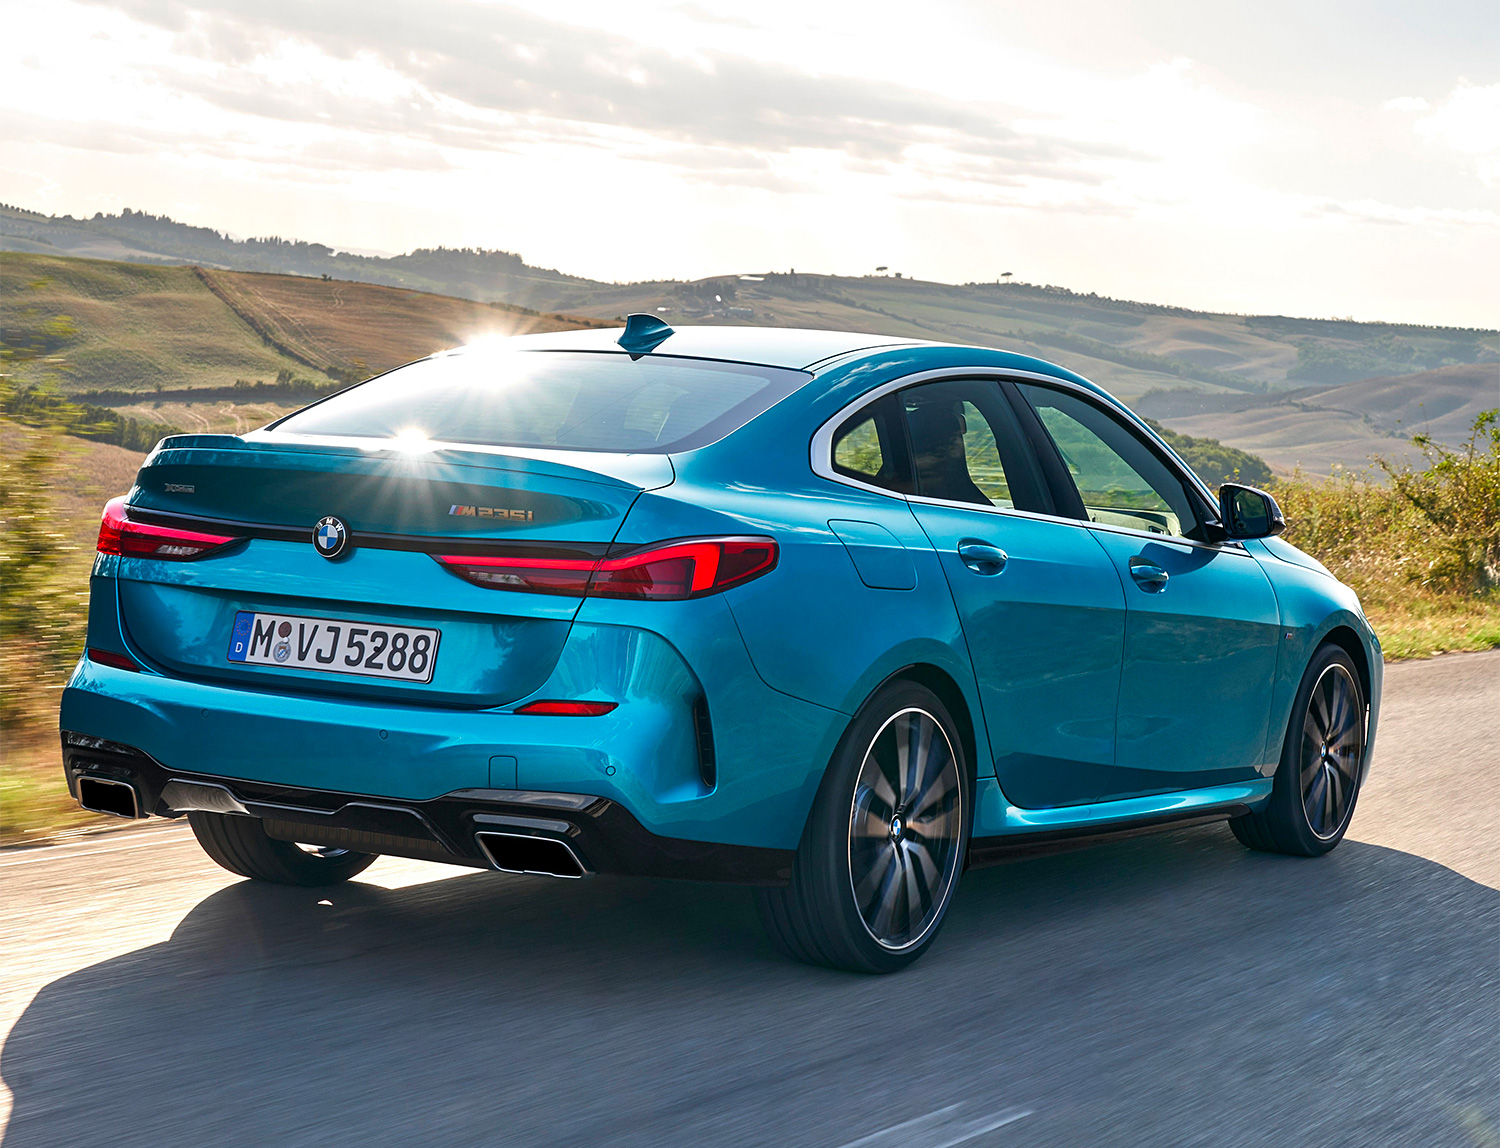 BMW Introduces 2 Series Gran Coupe for 2020 at werd.com